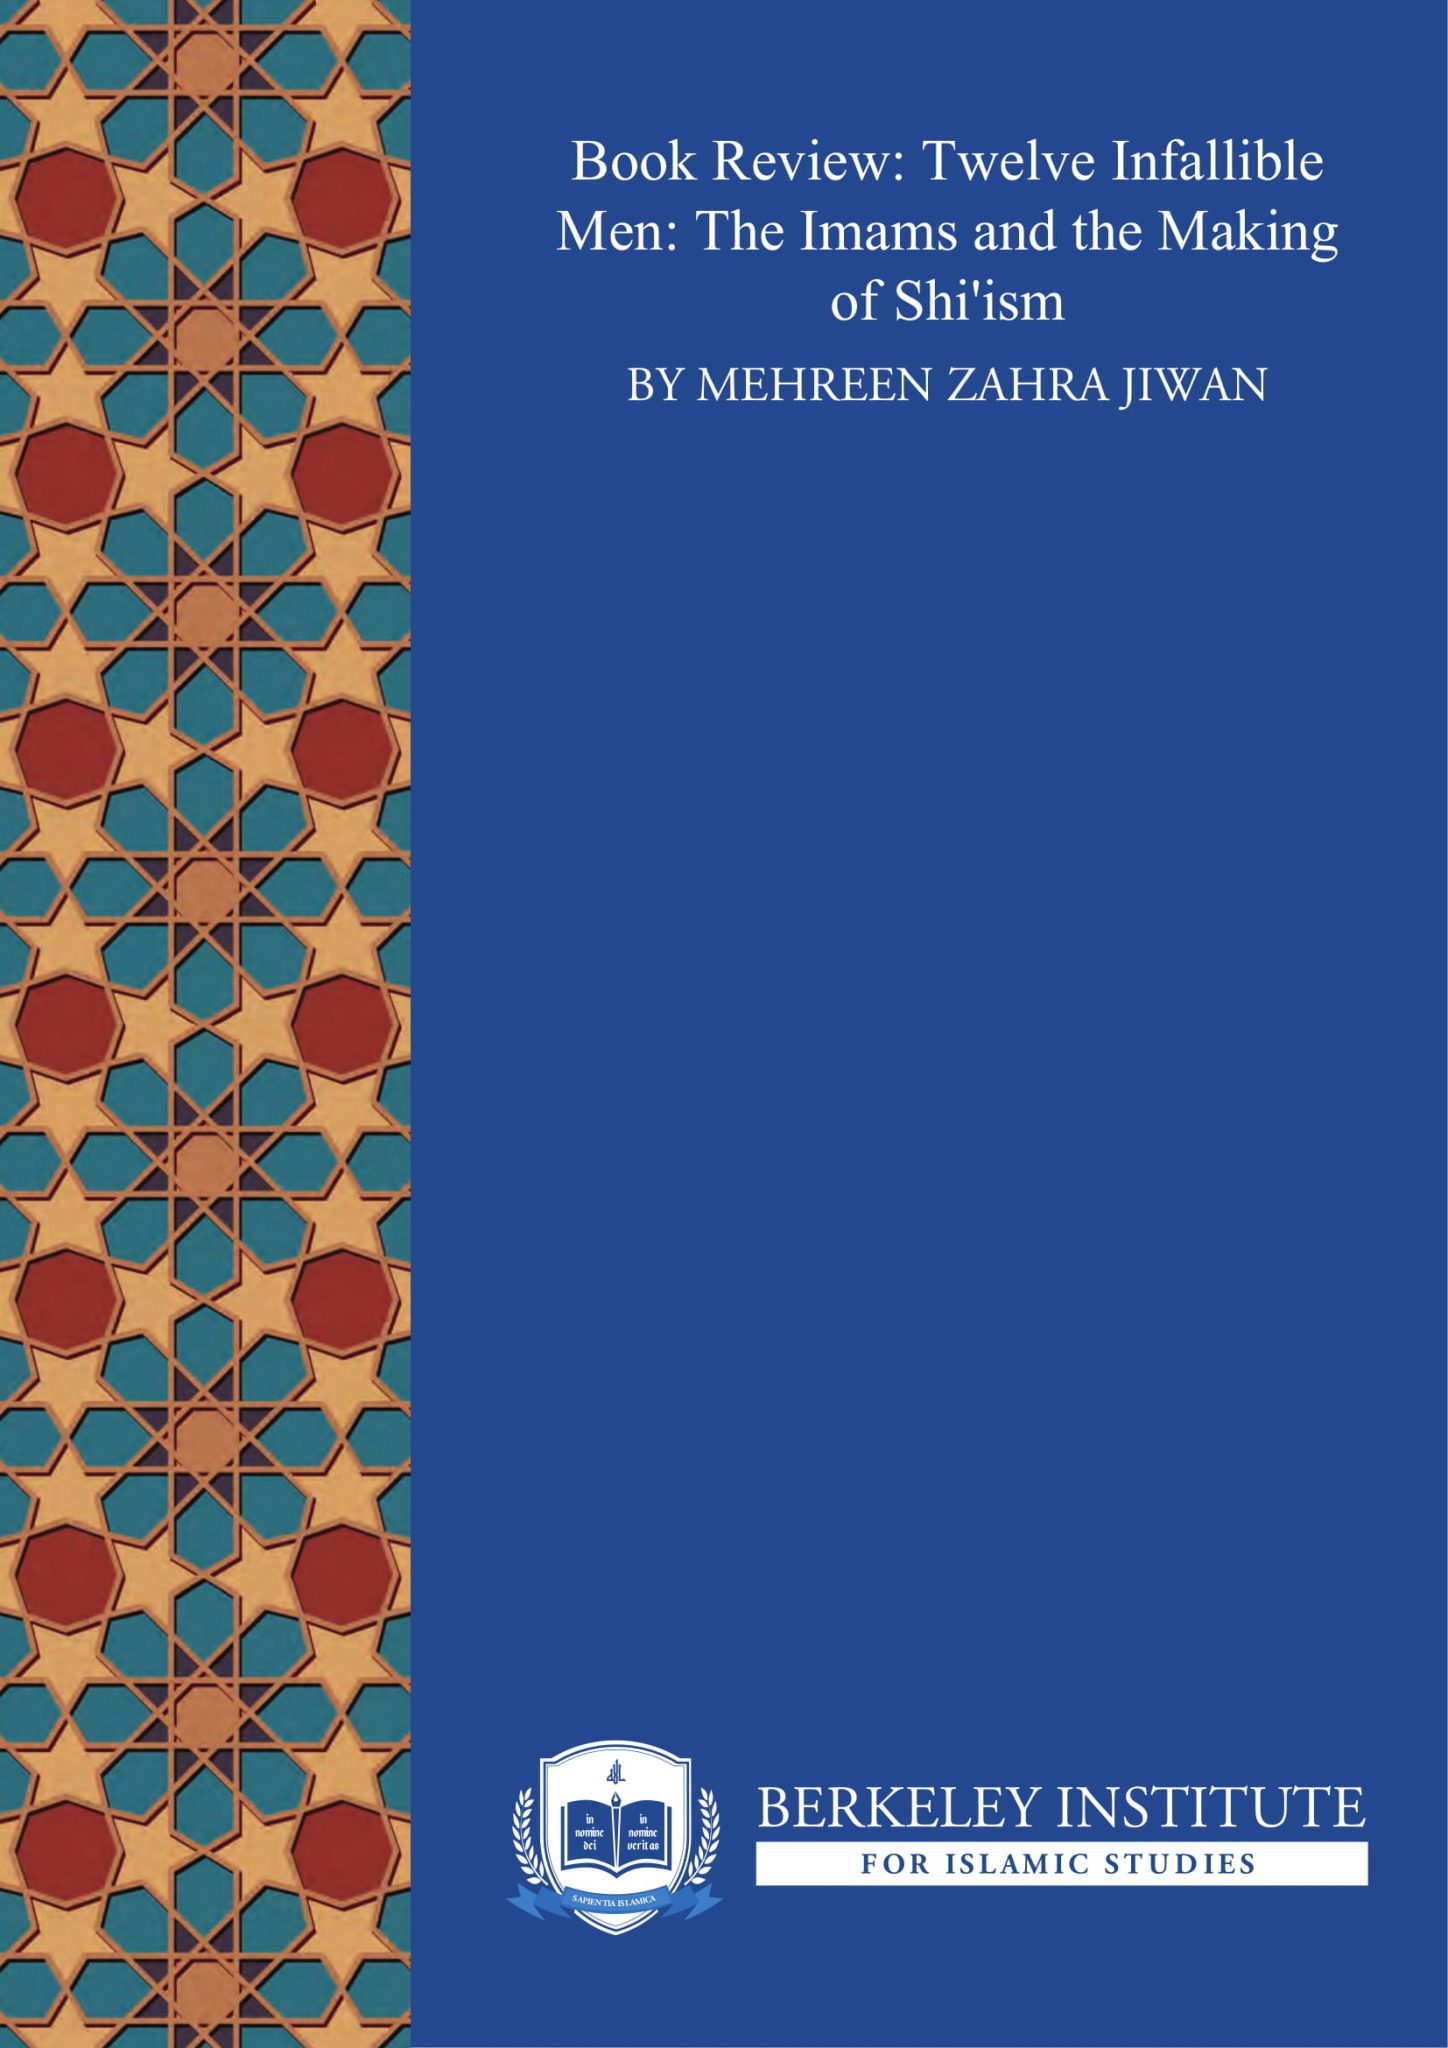 Book Review: Twelve Infallible Men: The Imams and the Making of Shiʿism